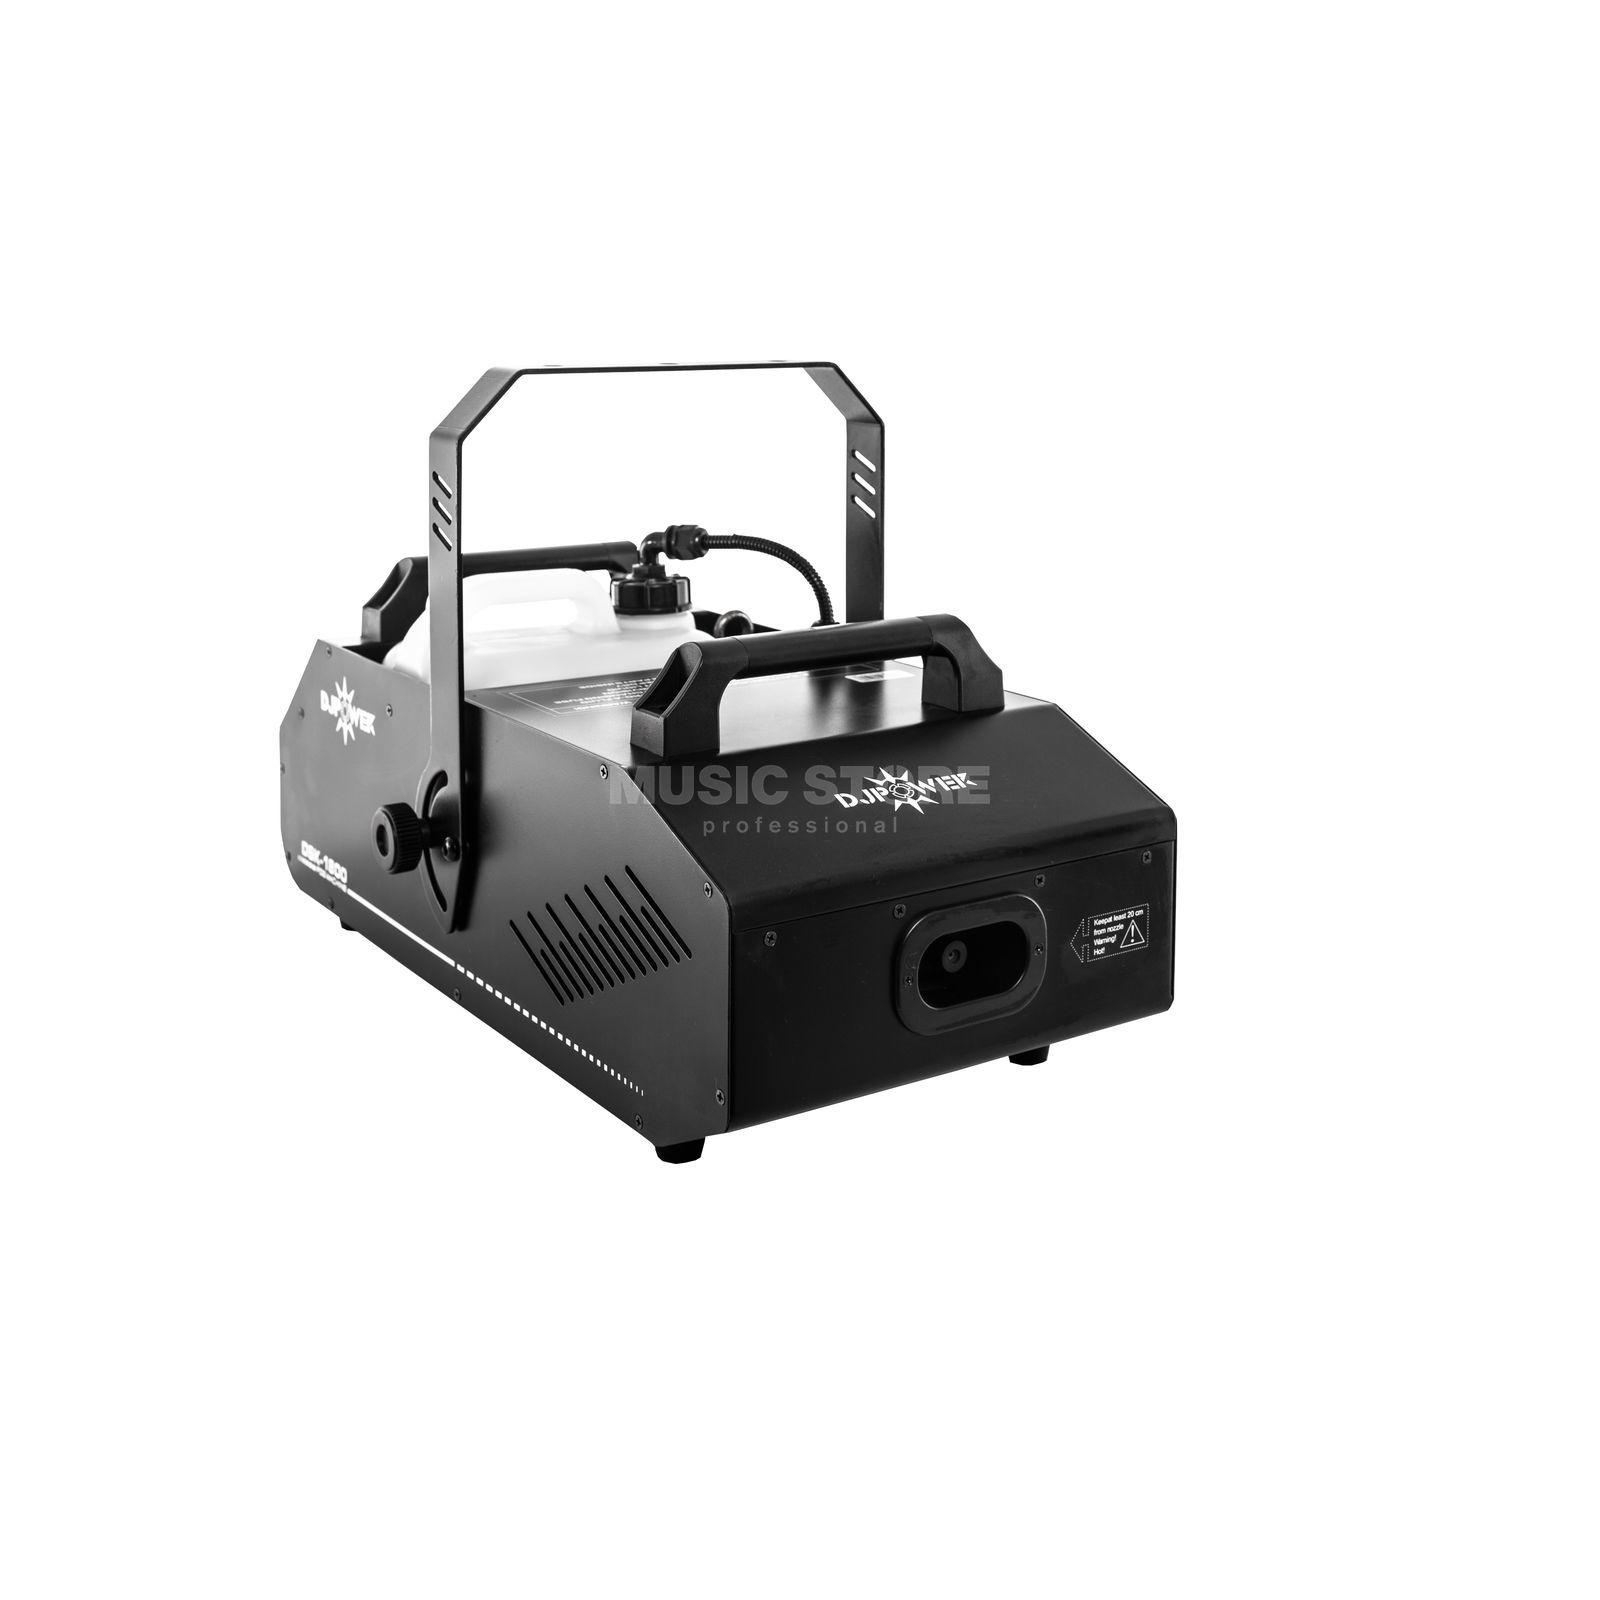 DJ Power DSK-1800 Fog Machine, 1750 Watt Product Image